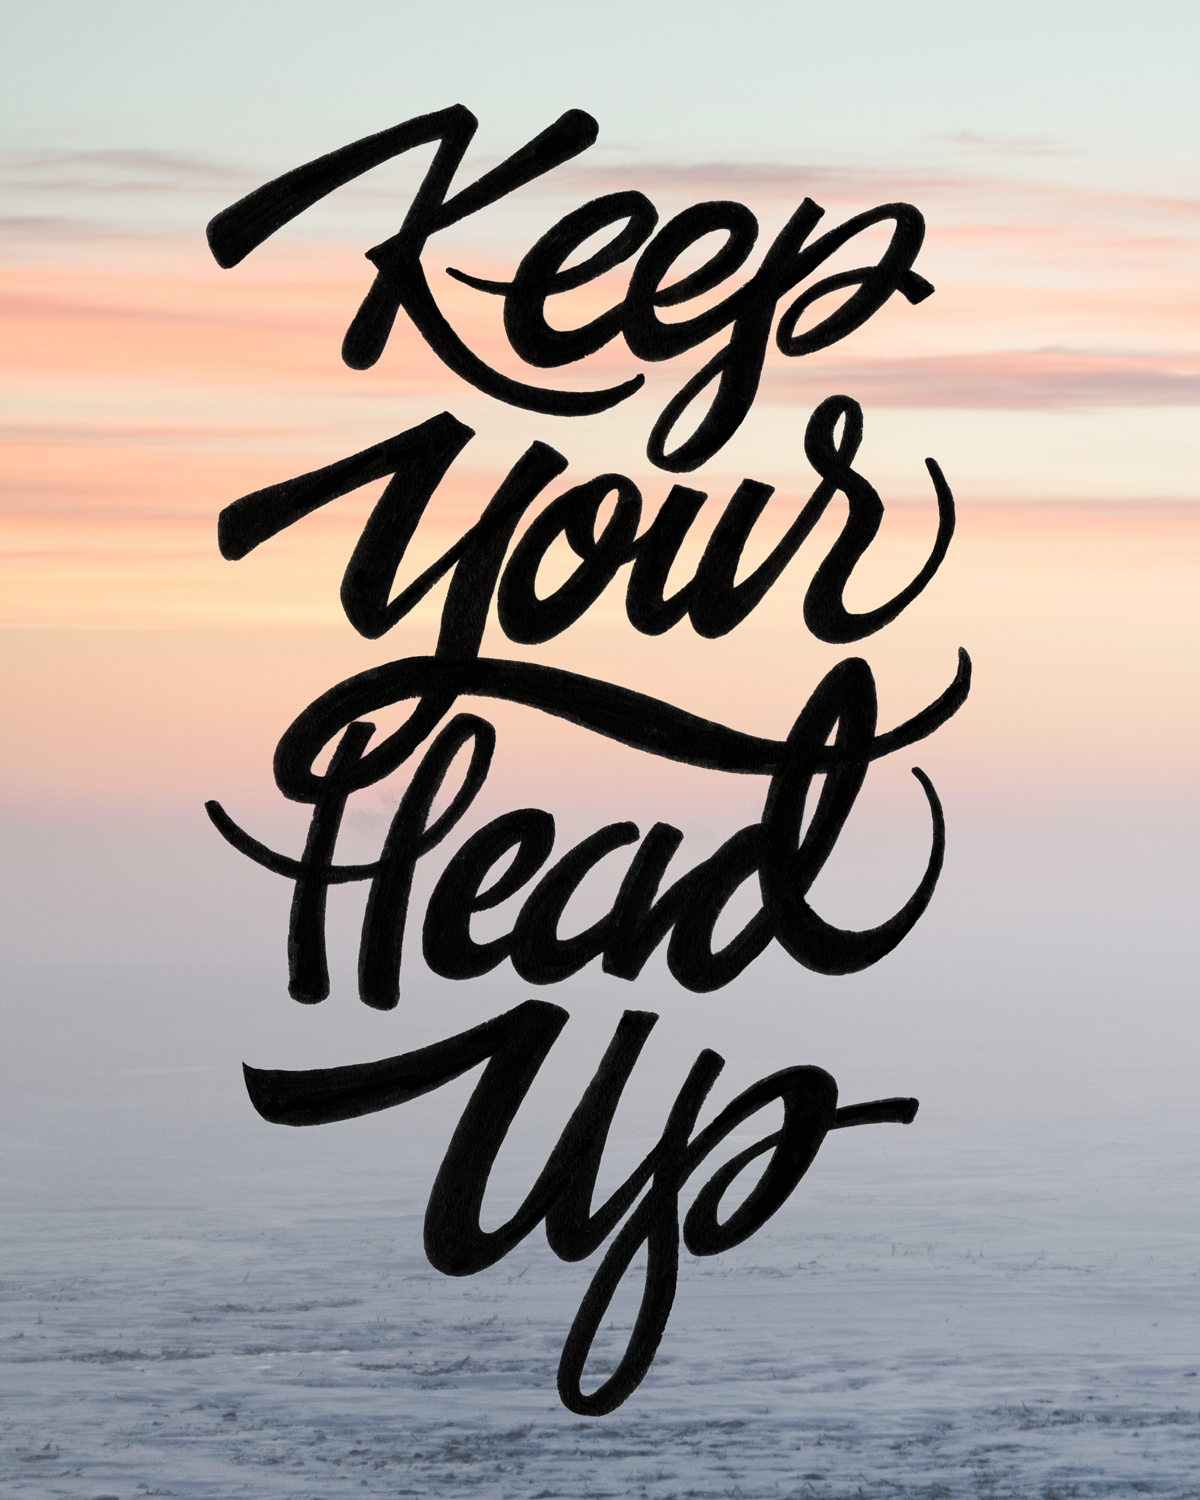 127-Keep-Your-Head-Up-8x10.png